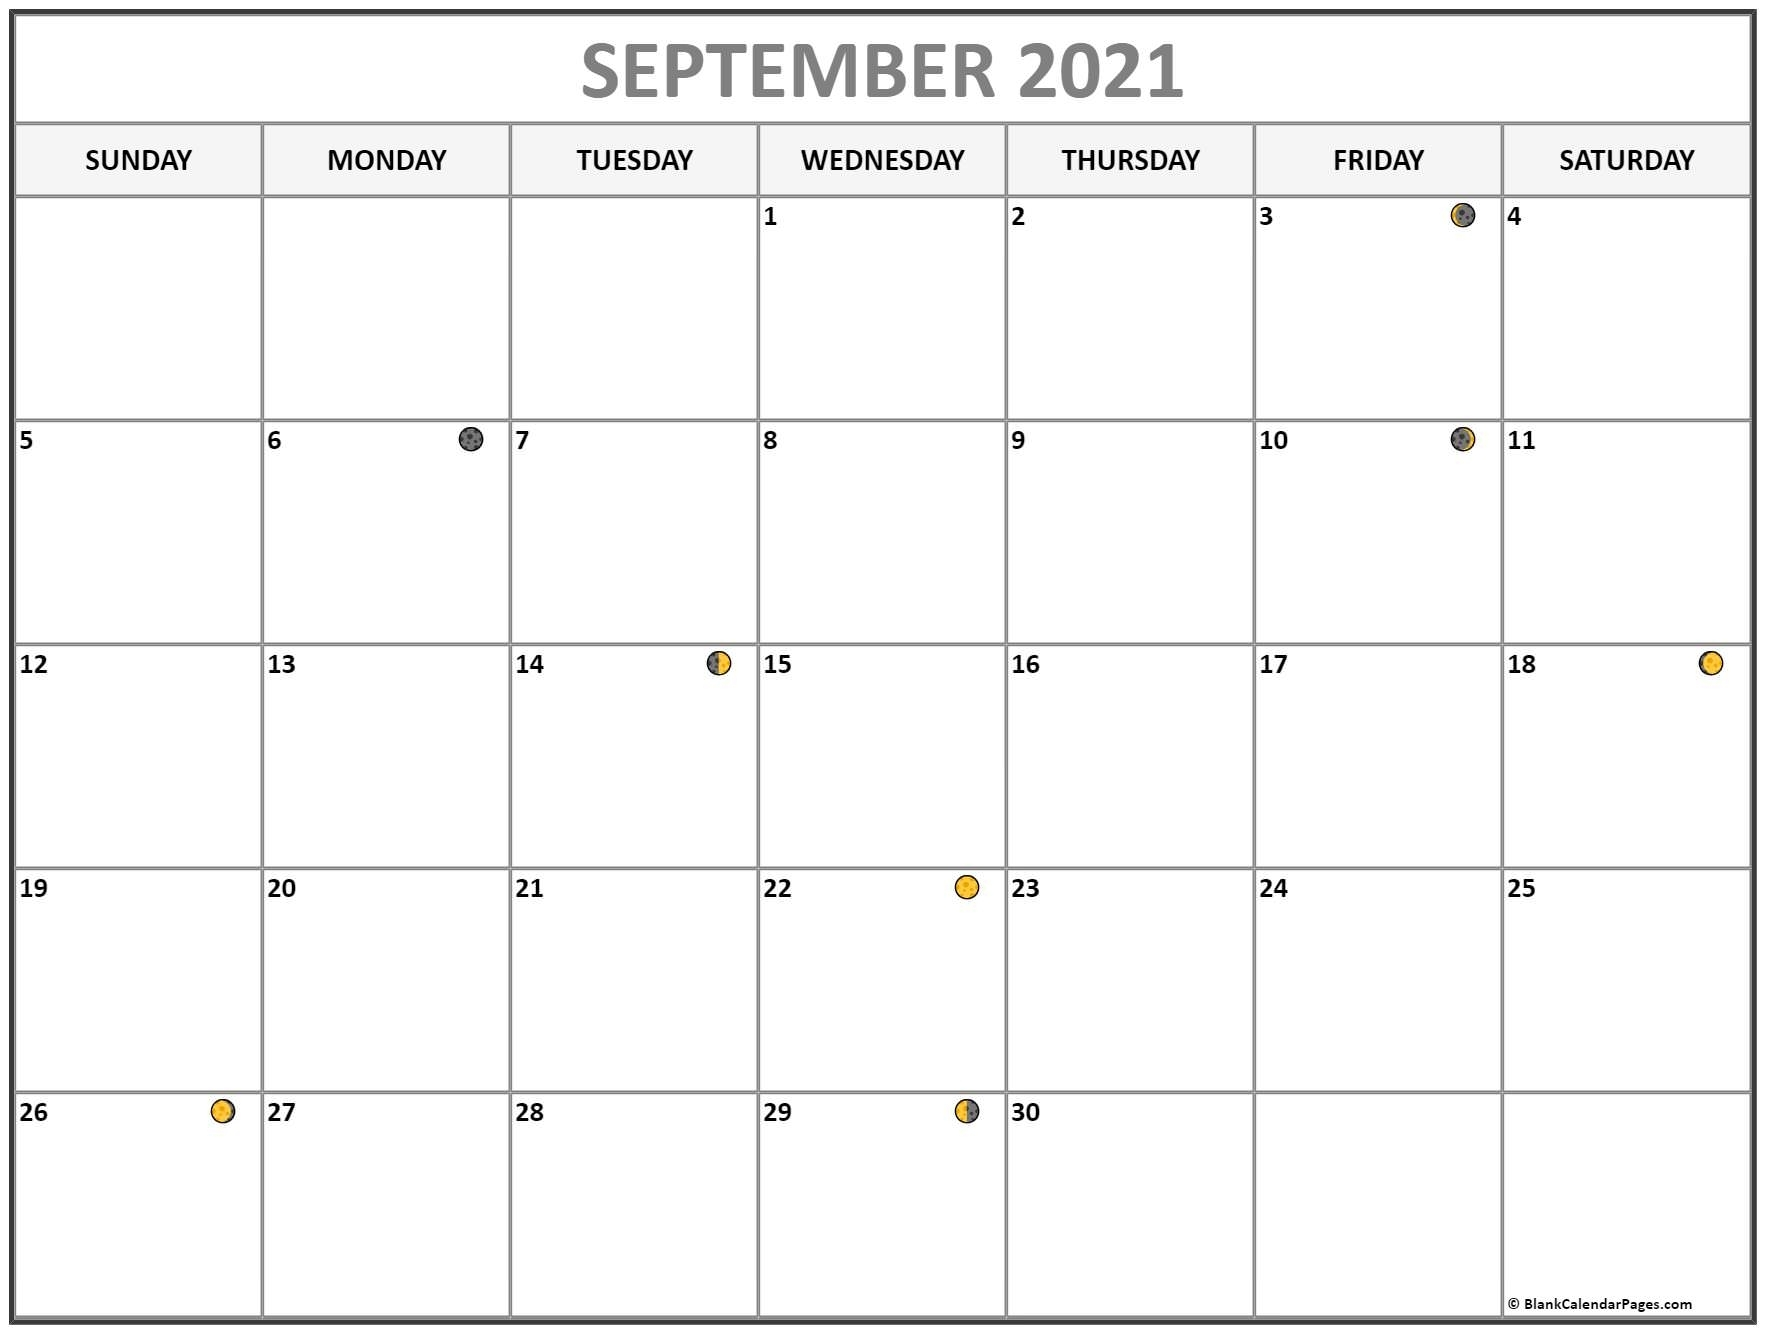 Catch Moon Phases September 2021